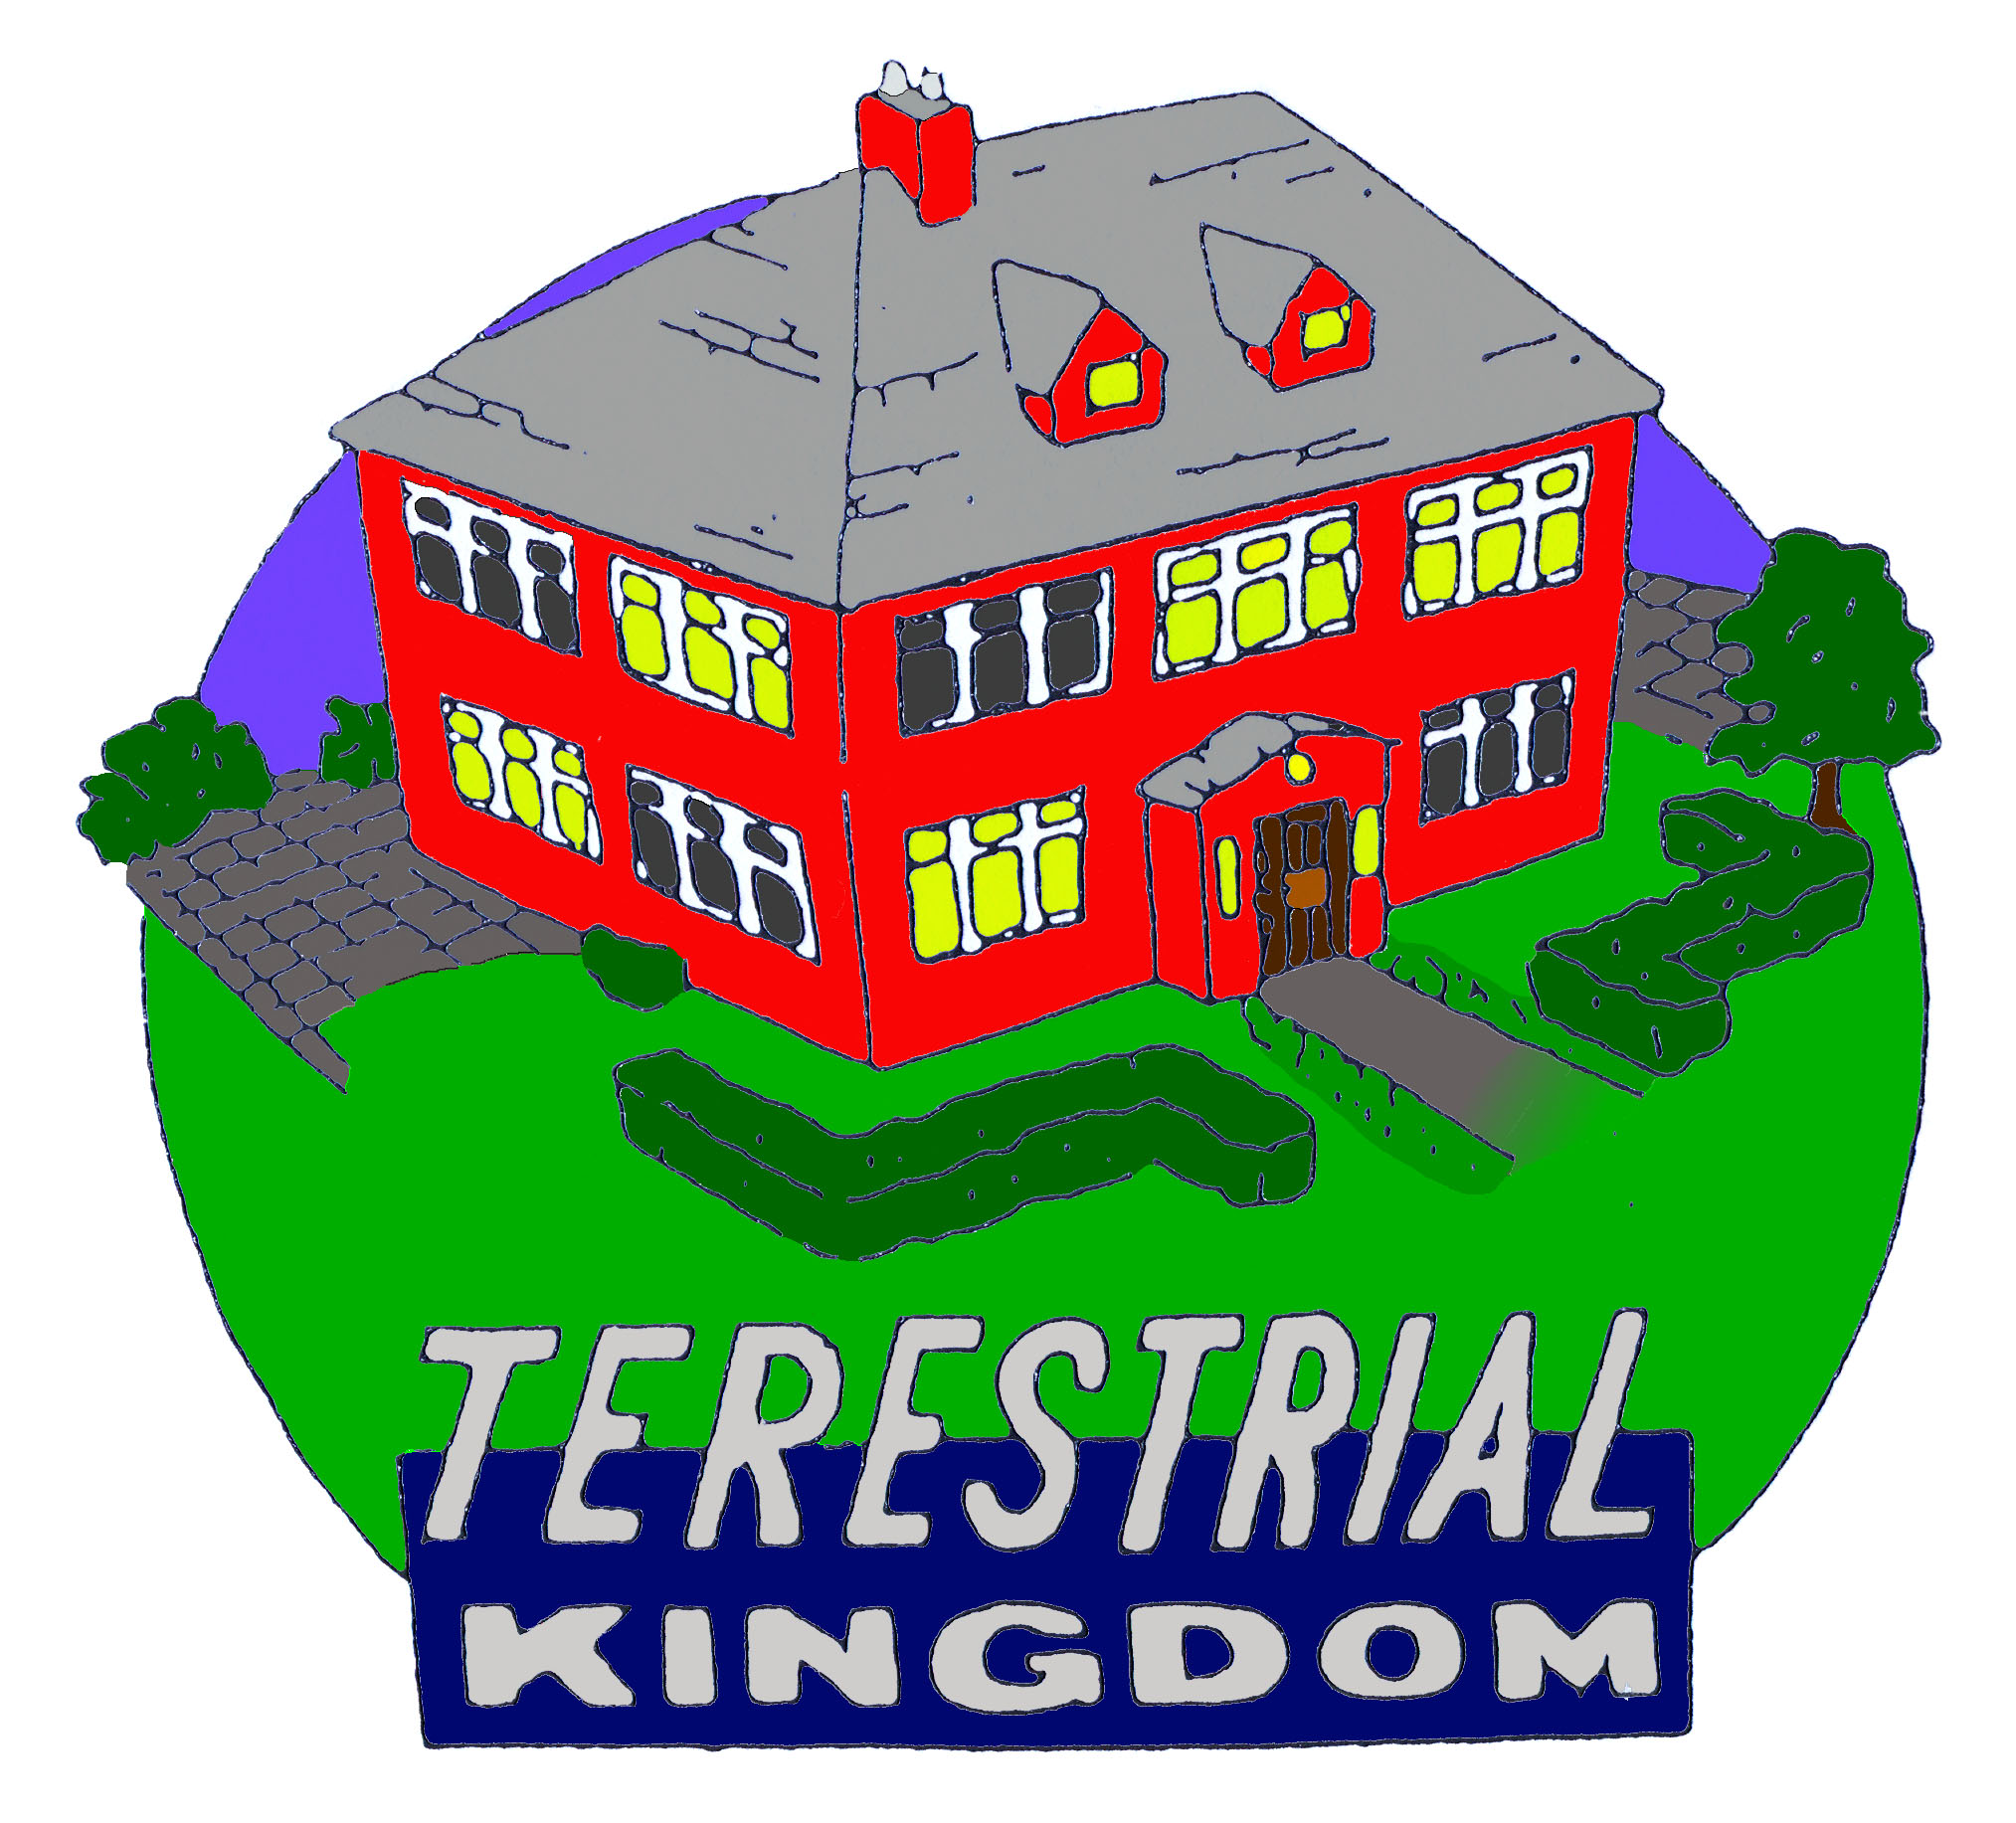 Terrestrial Kingdom